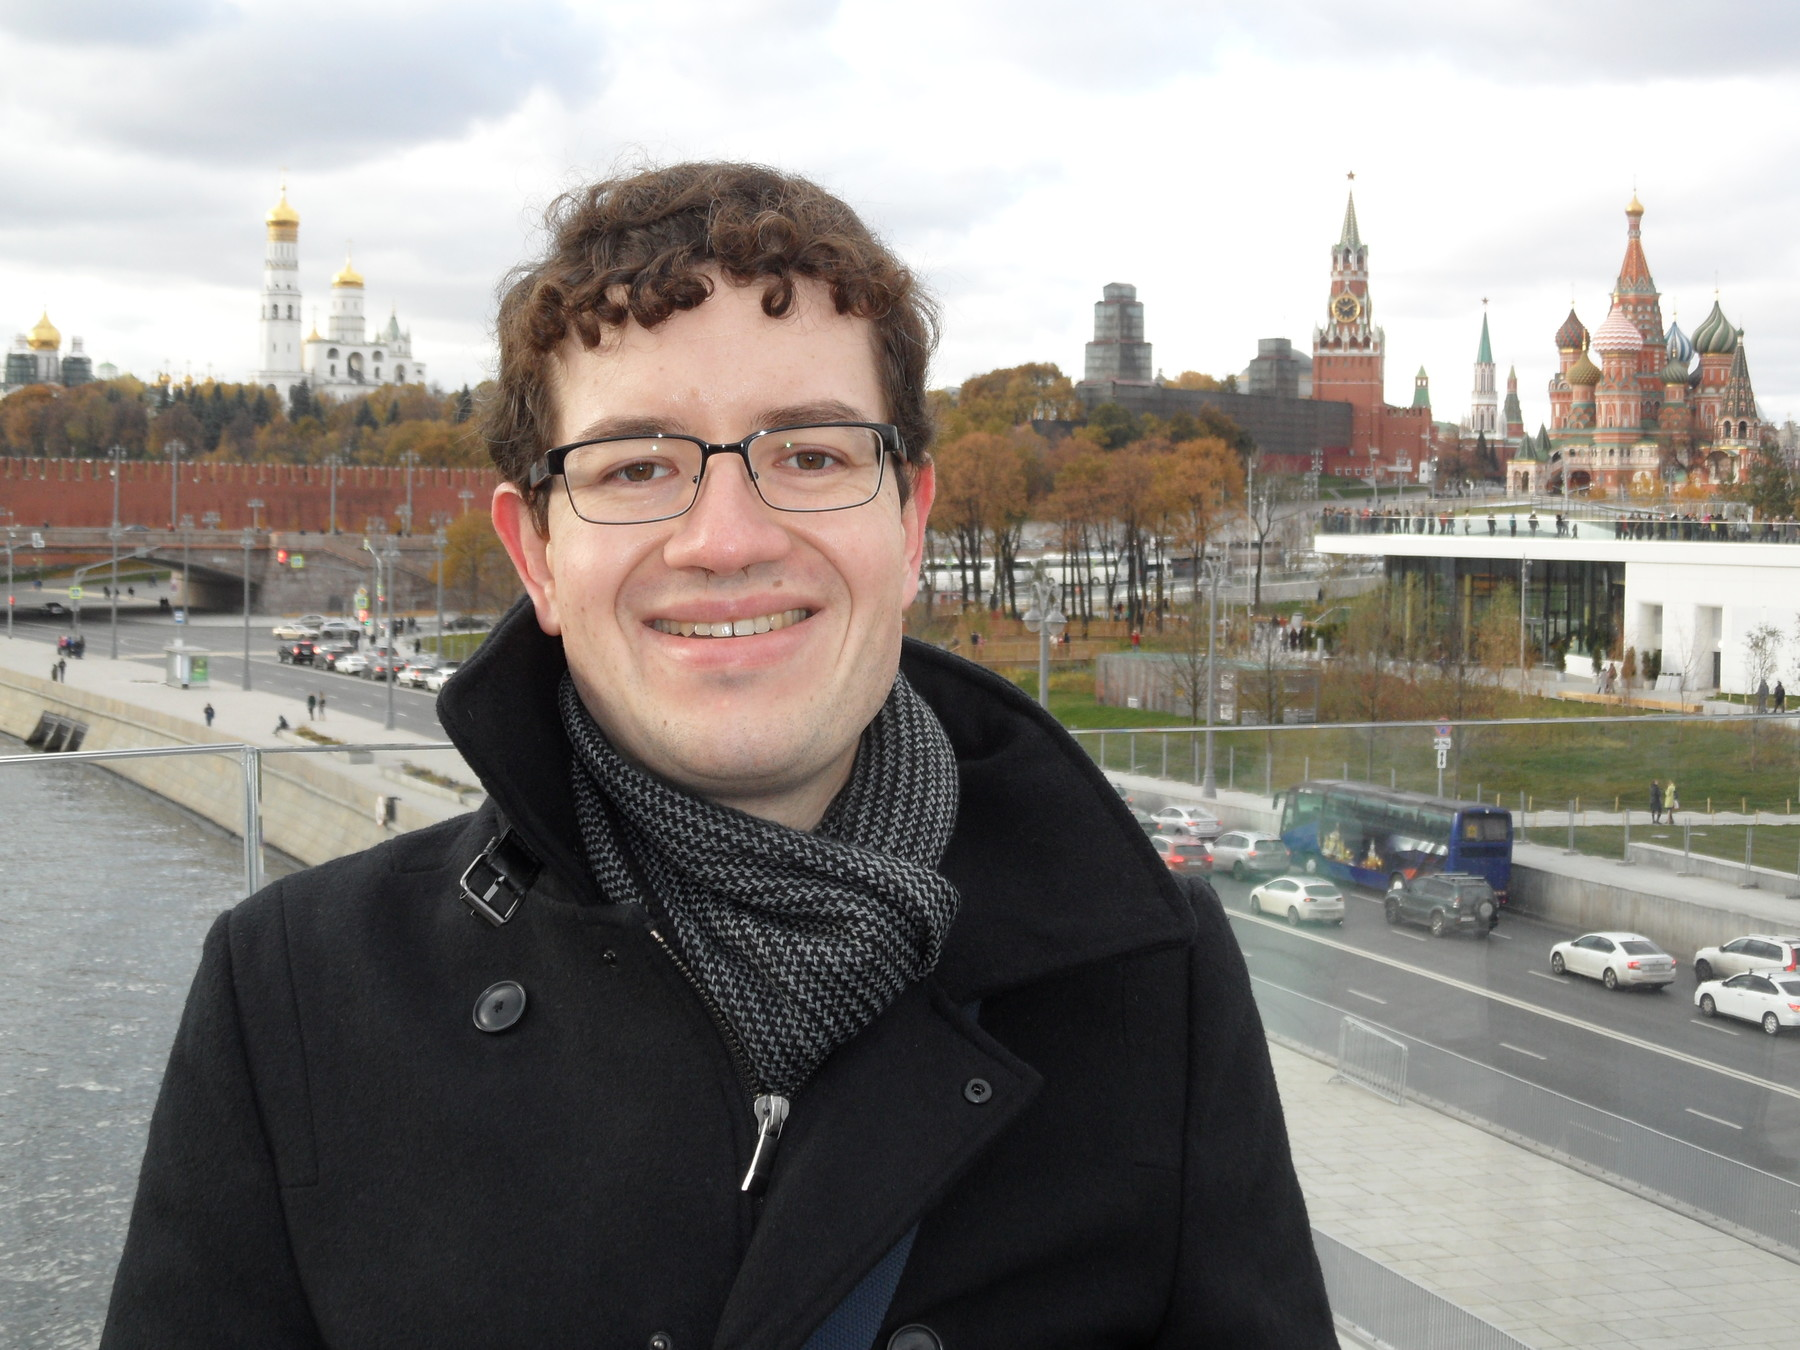 Matthew Klopfenstein at the newly-opened Zariad'e Park, with the Kremlin in the background